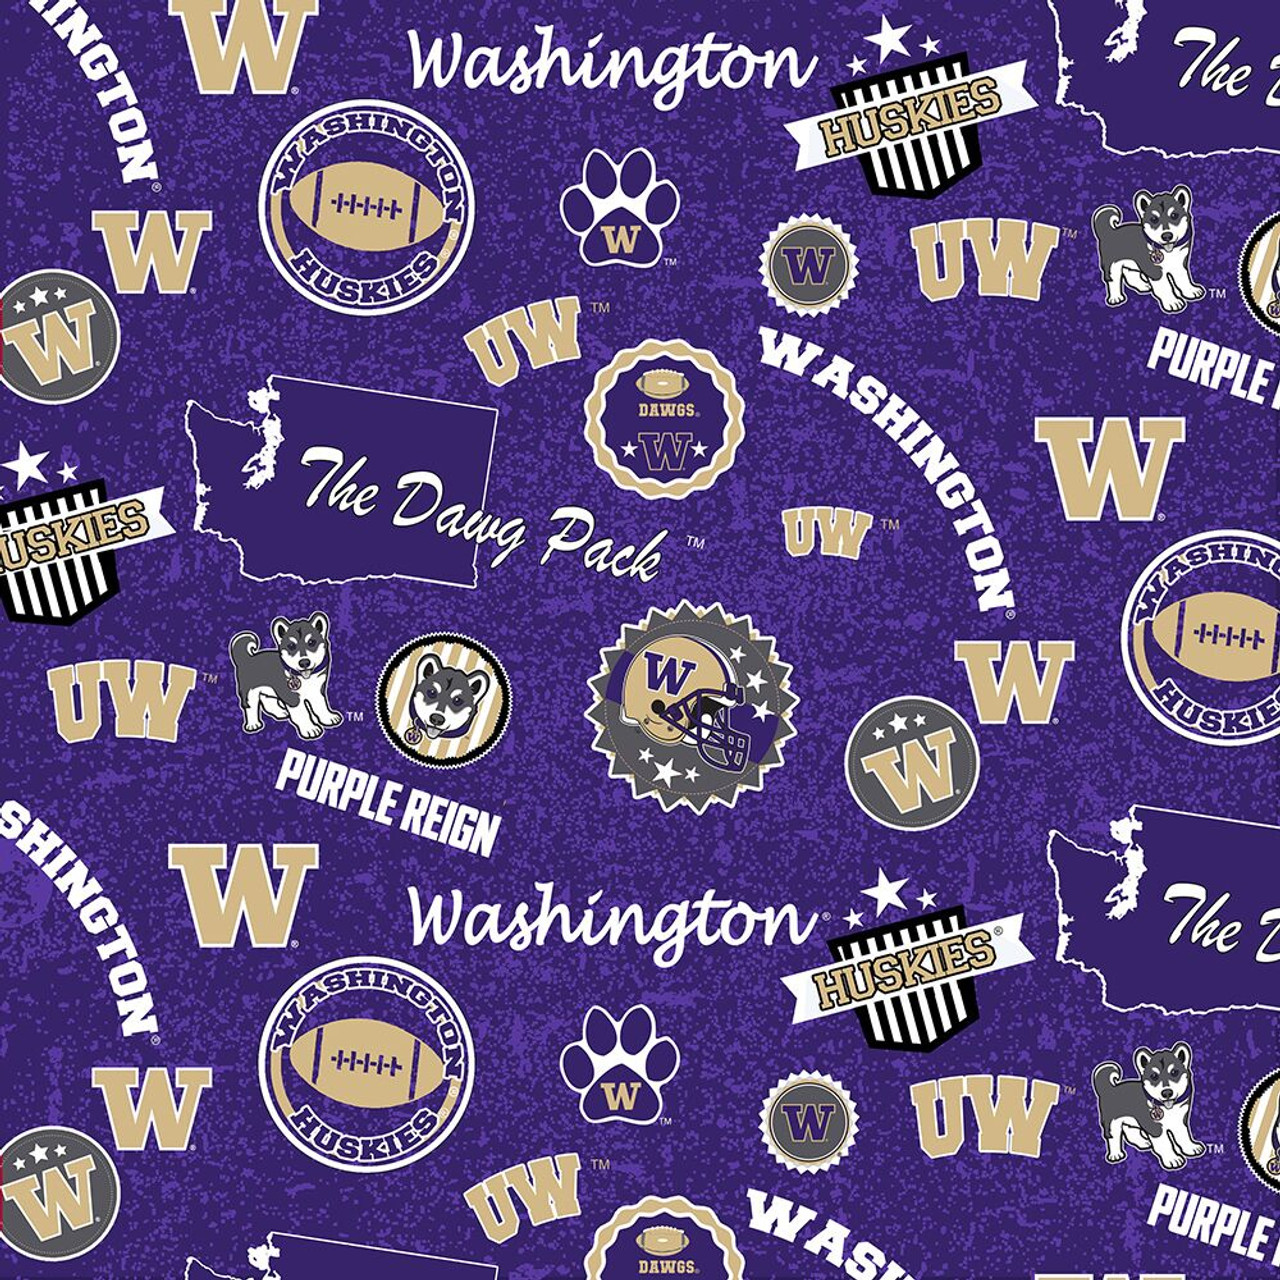 University Of Washington Cotton Fabric With Home State Cotton Design Sold By The Yard College Fabric Store